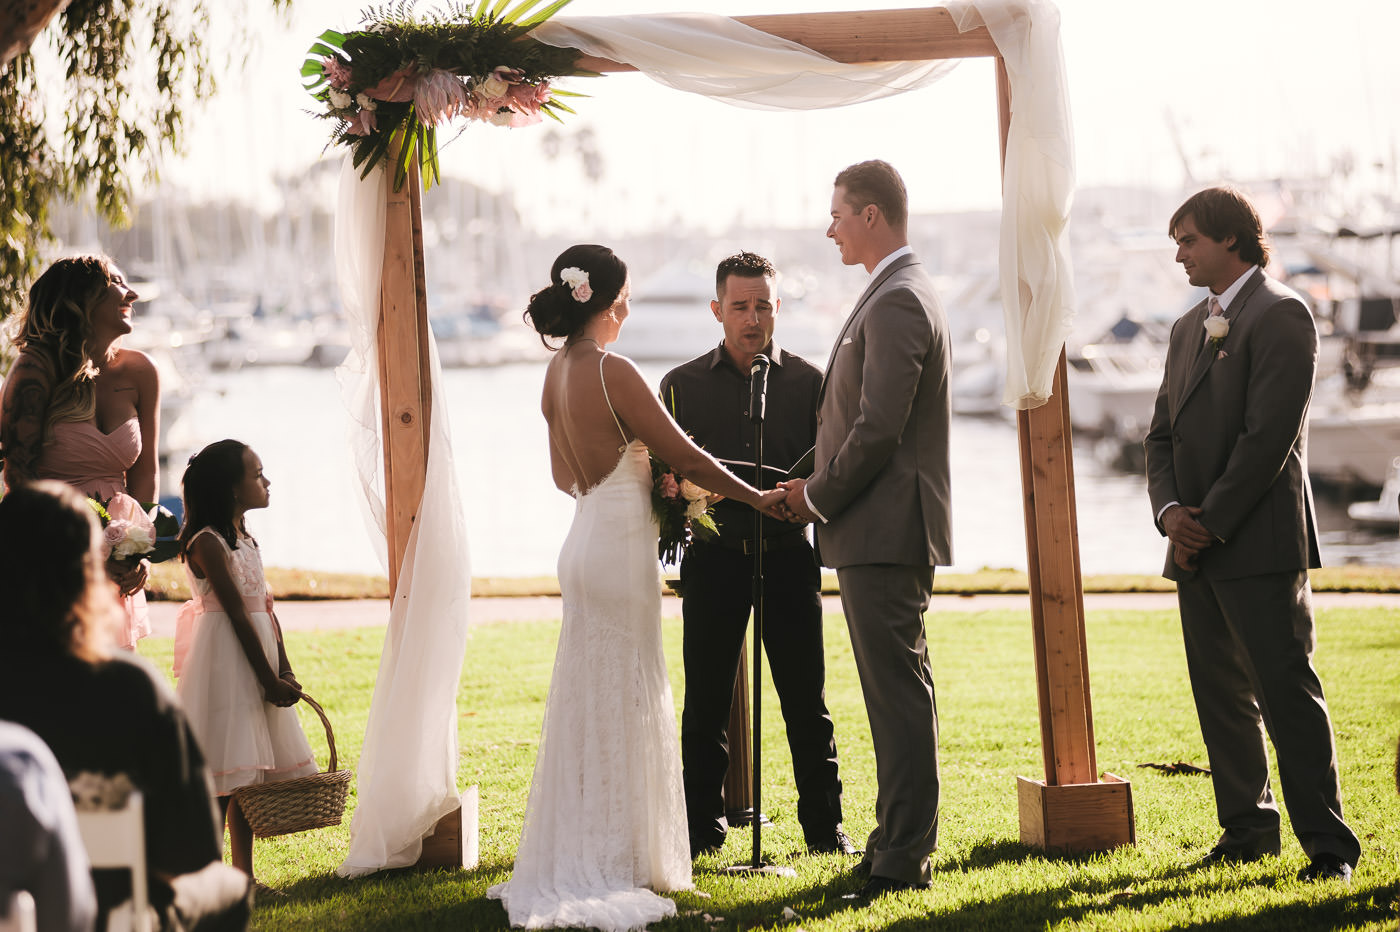 Gorgeous sunset marriage ceremony at the Marina Village in San Diego California.